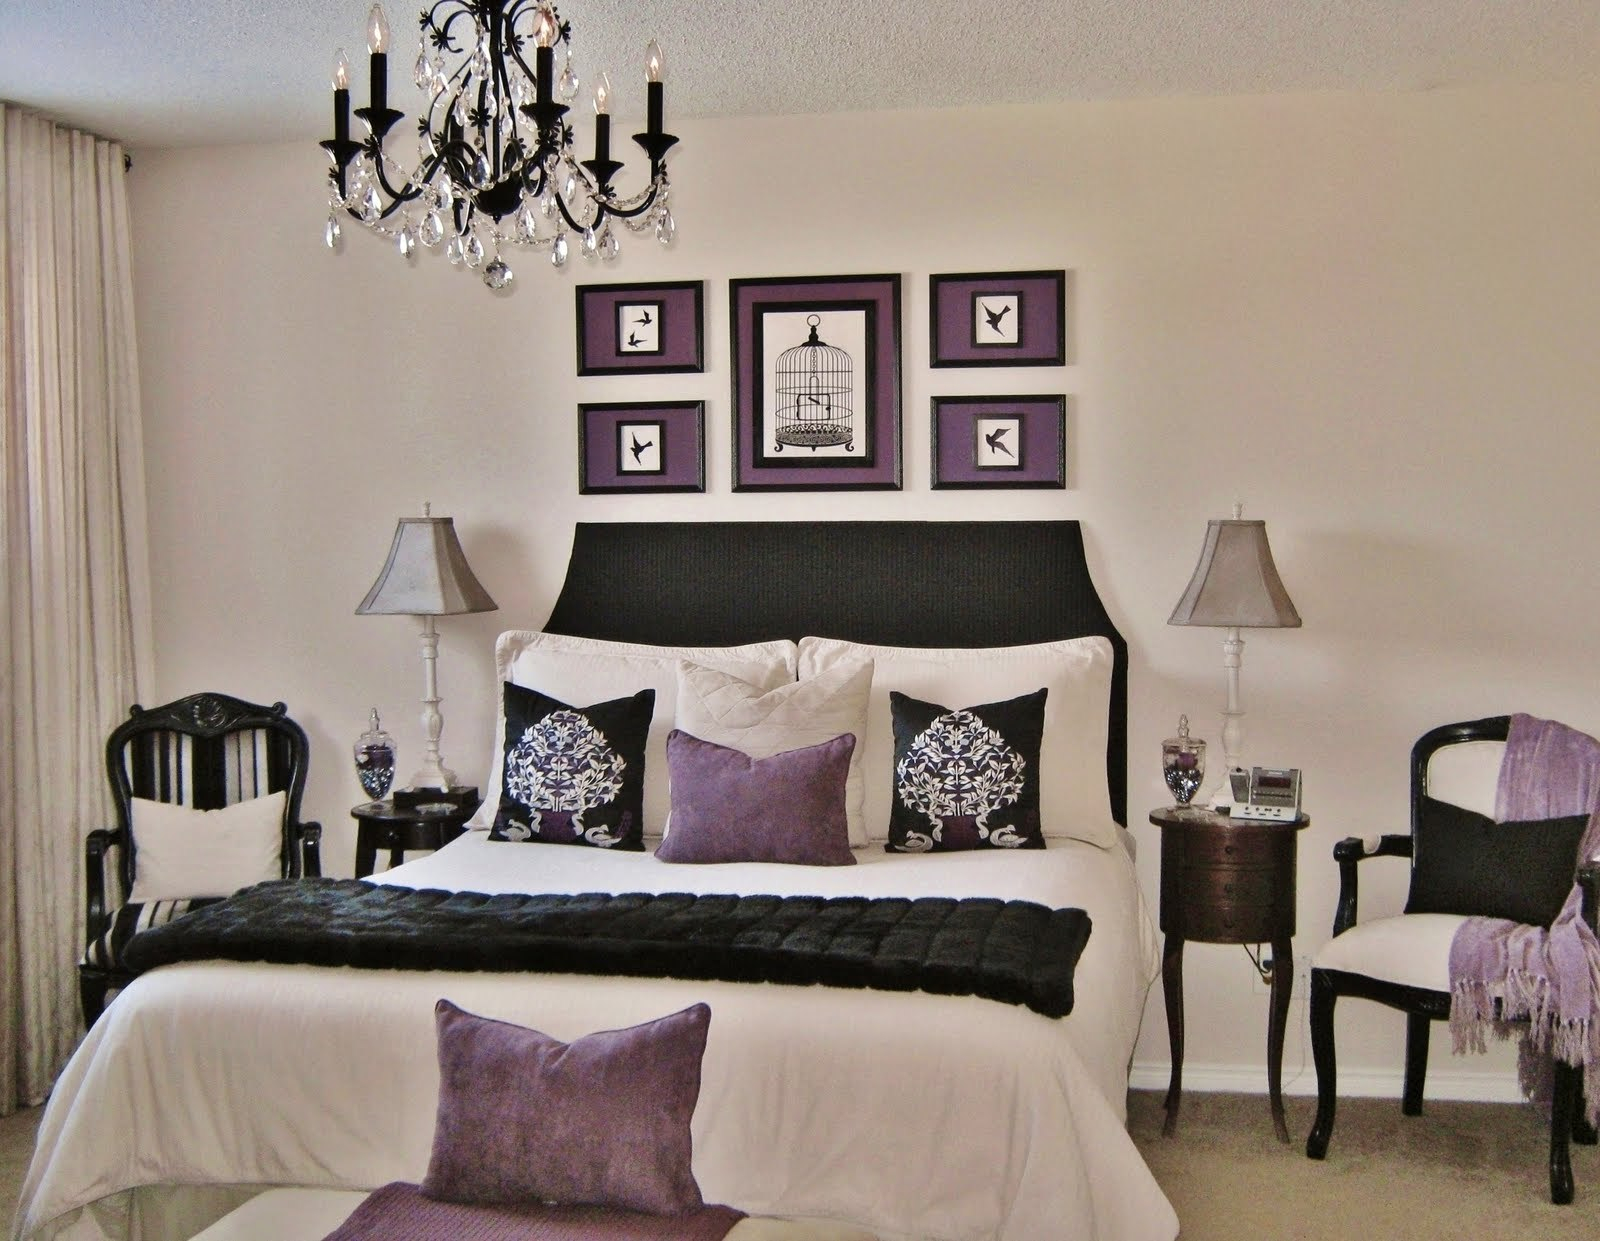 10 Pretty Ideas To Decorate Your Bedroom ideas for decorating your bedroom 20 romantic bedroom ideas decoholic